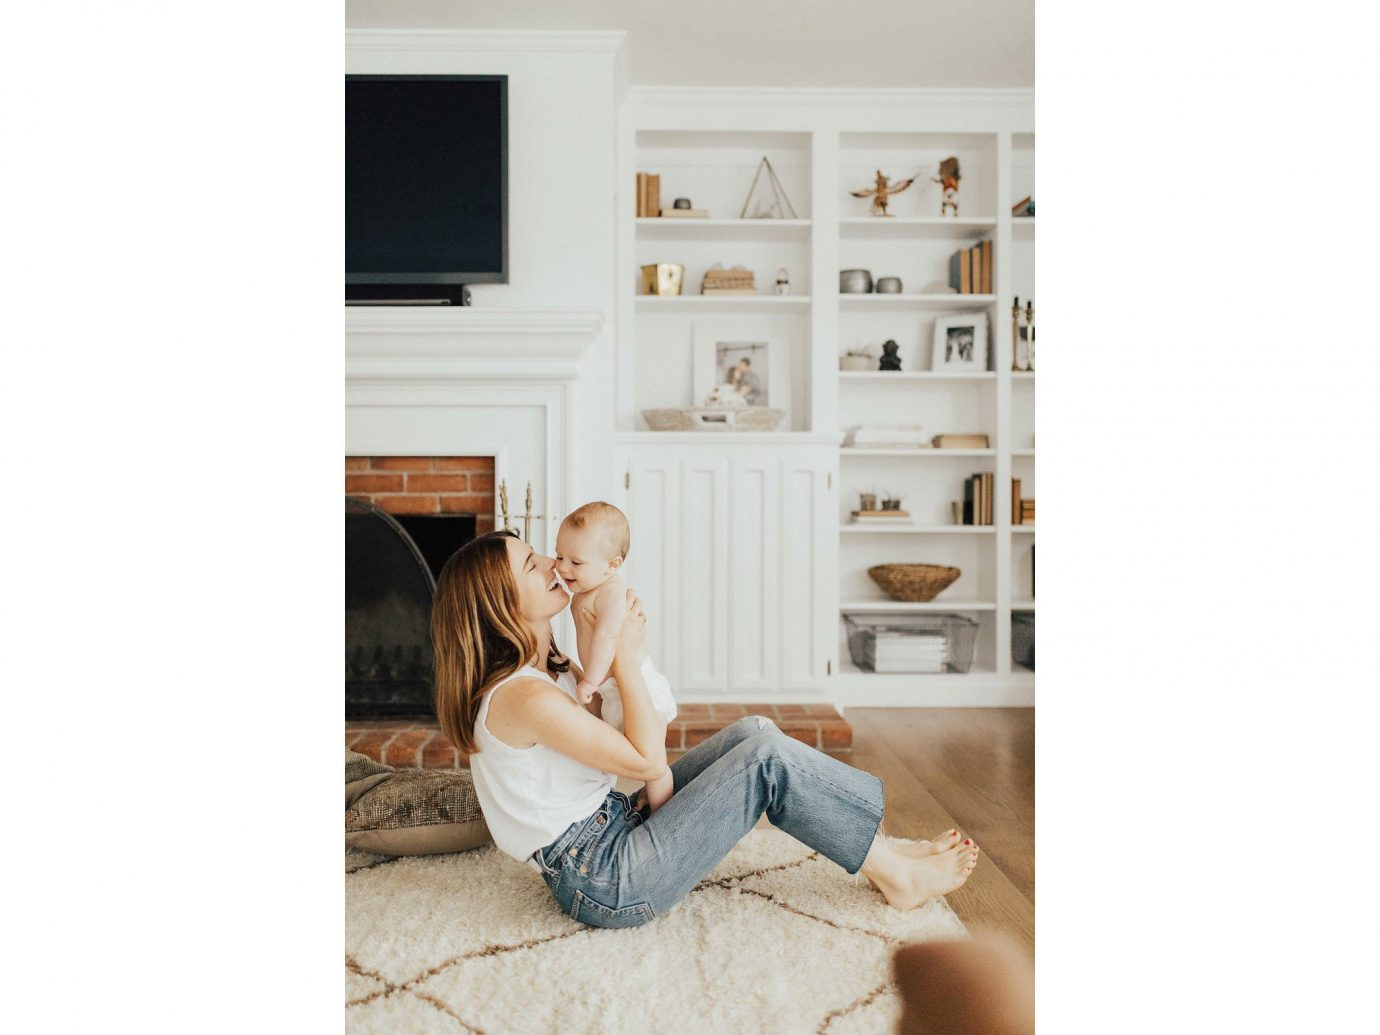 Influencers + Tastemakers photograph furniture photography photo shoot floor flooring wood couch